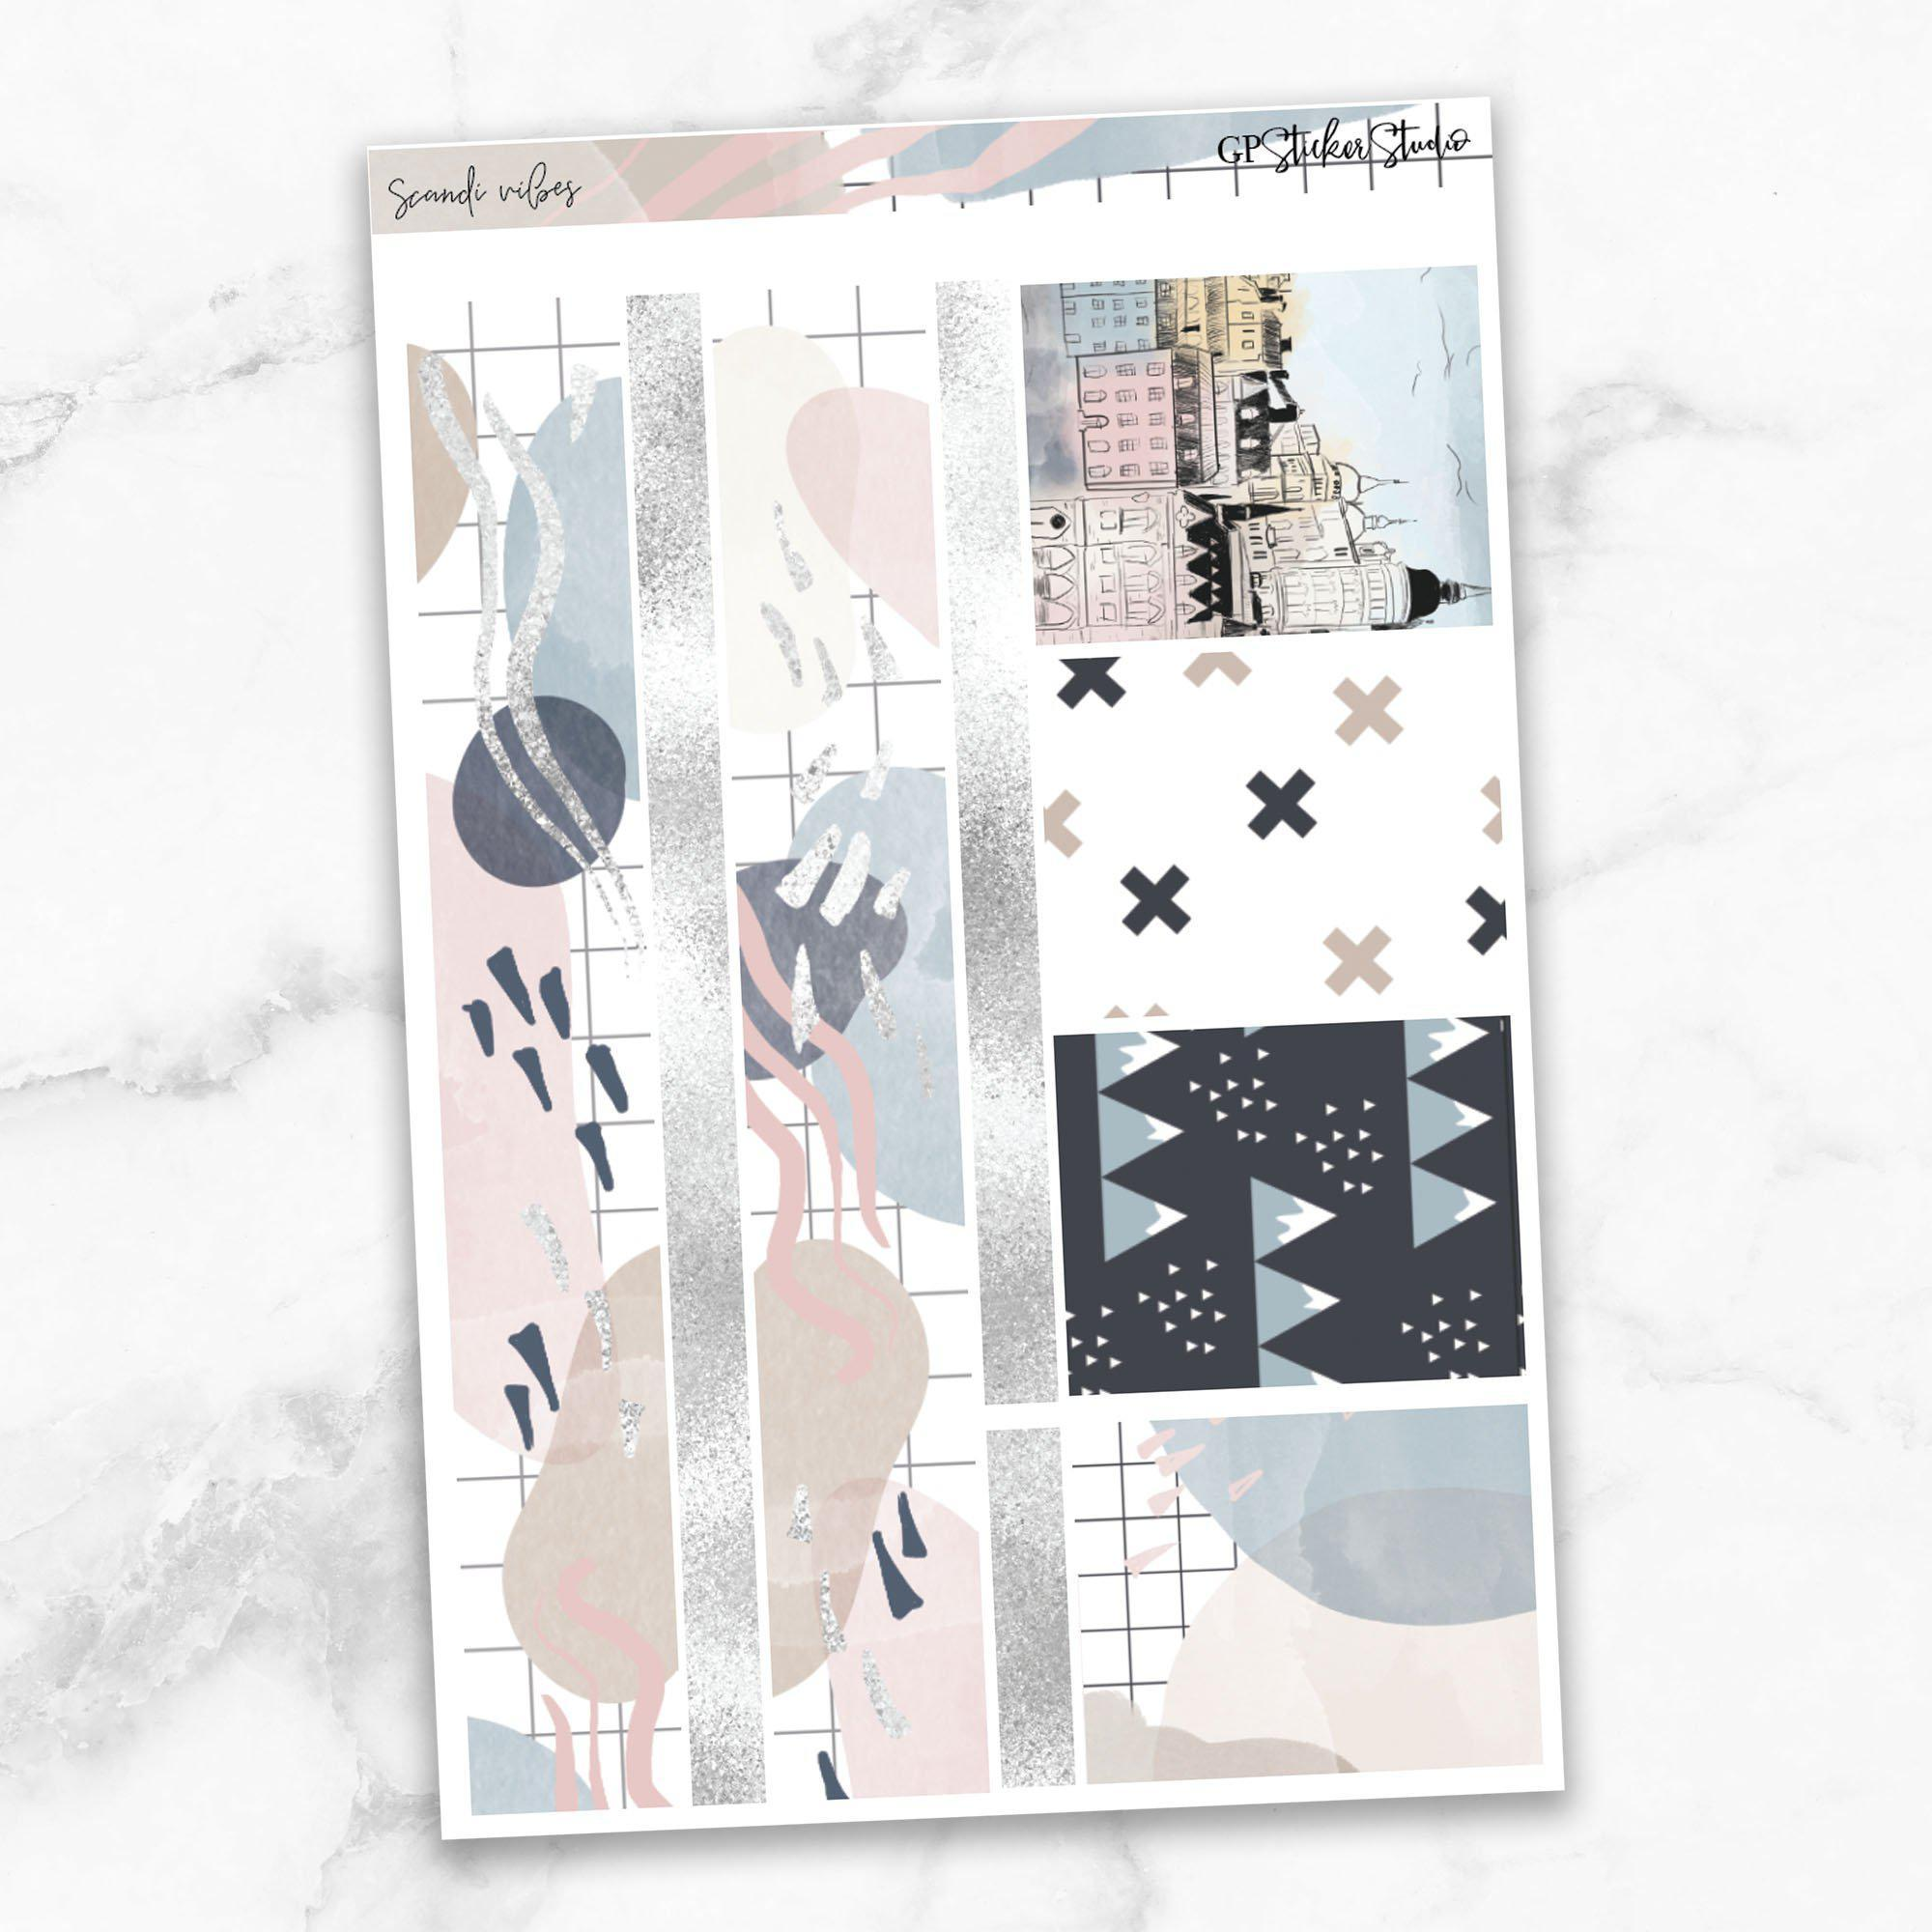 SCANDI VIBES Washi Sheet Stickers-The GP Studio